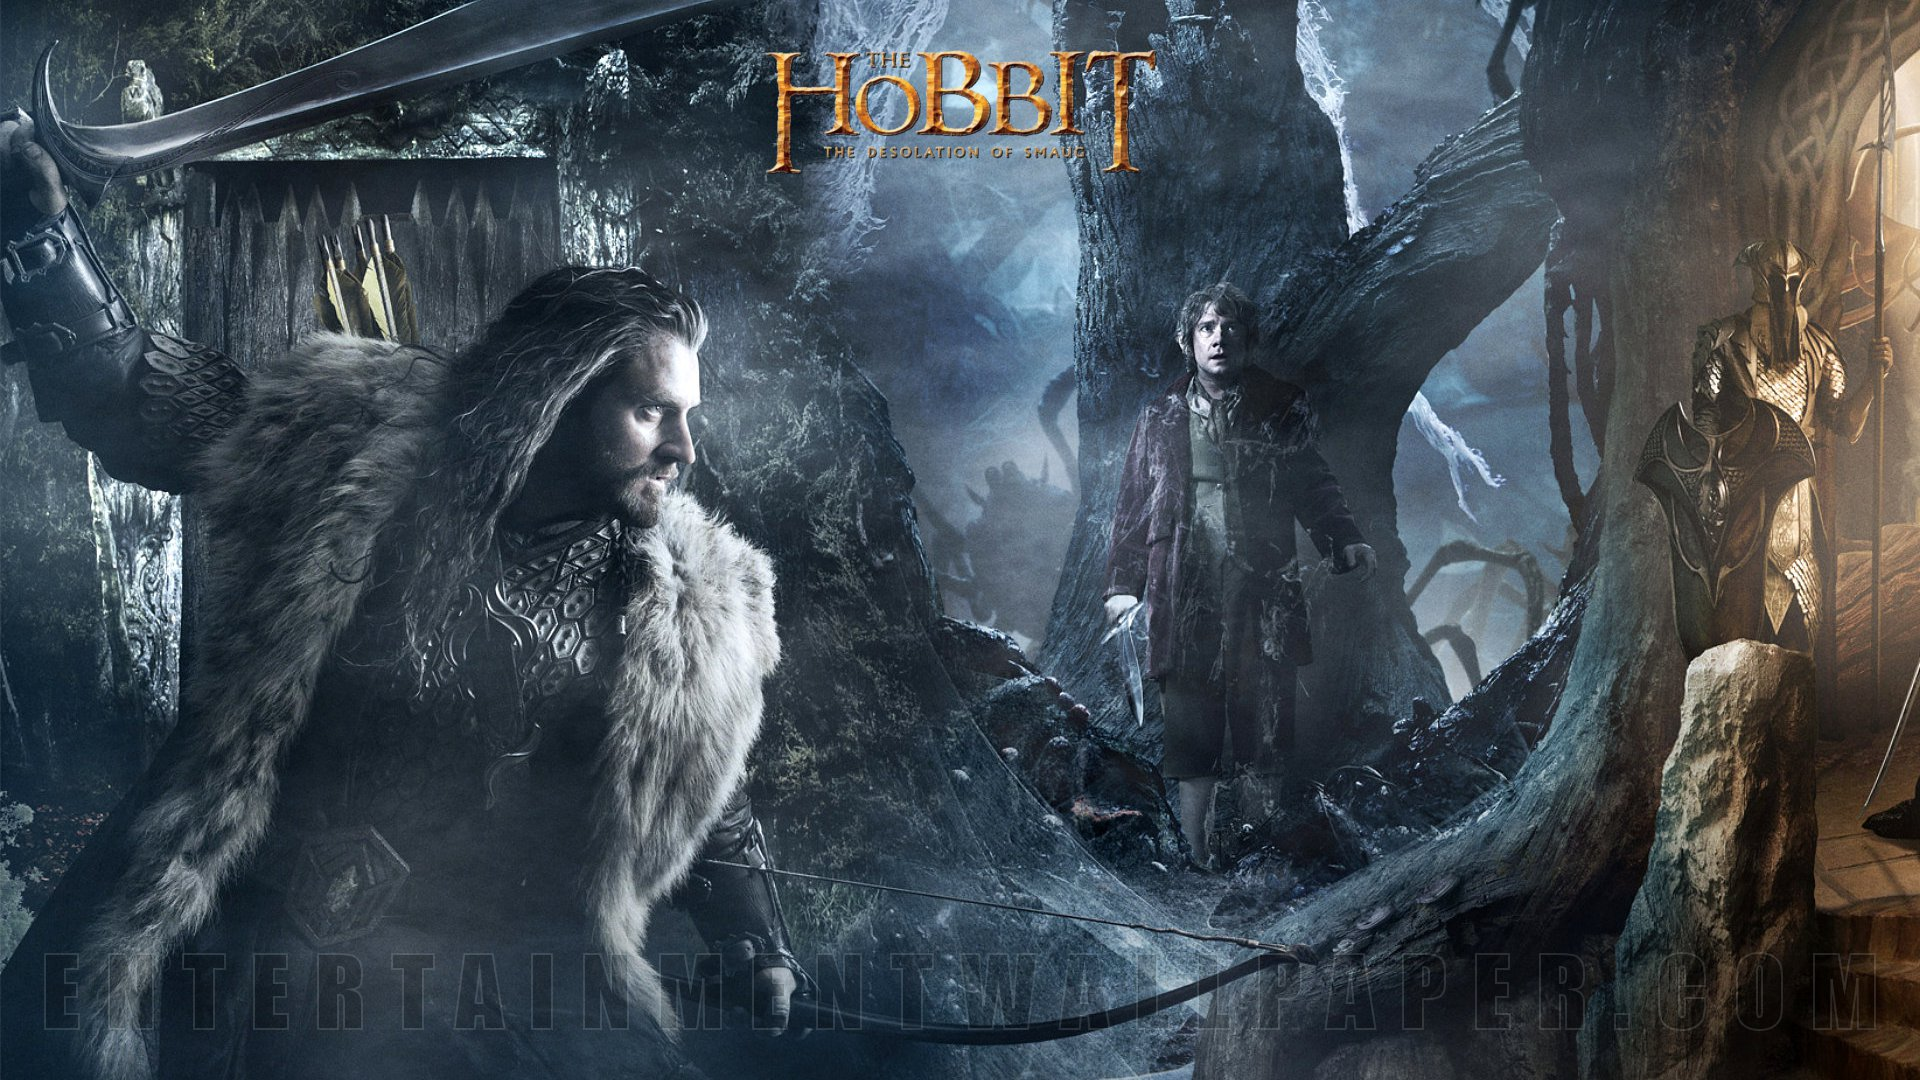 The Hobbit Desolation Of Smaug Wallpaper Elves Bard 1920x1080